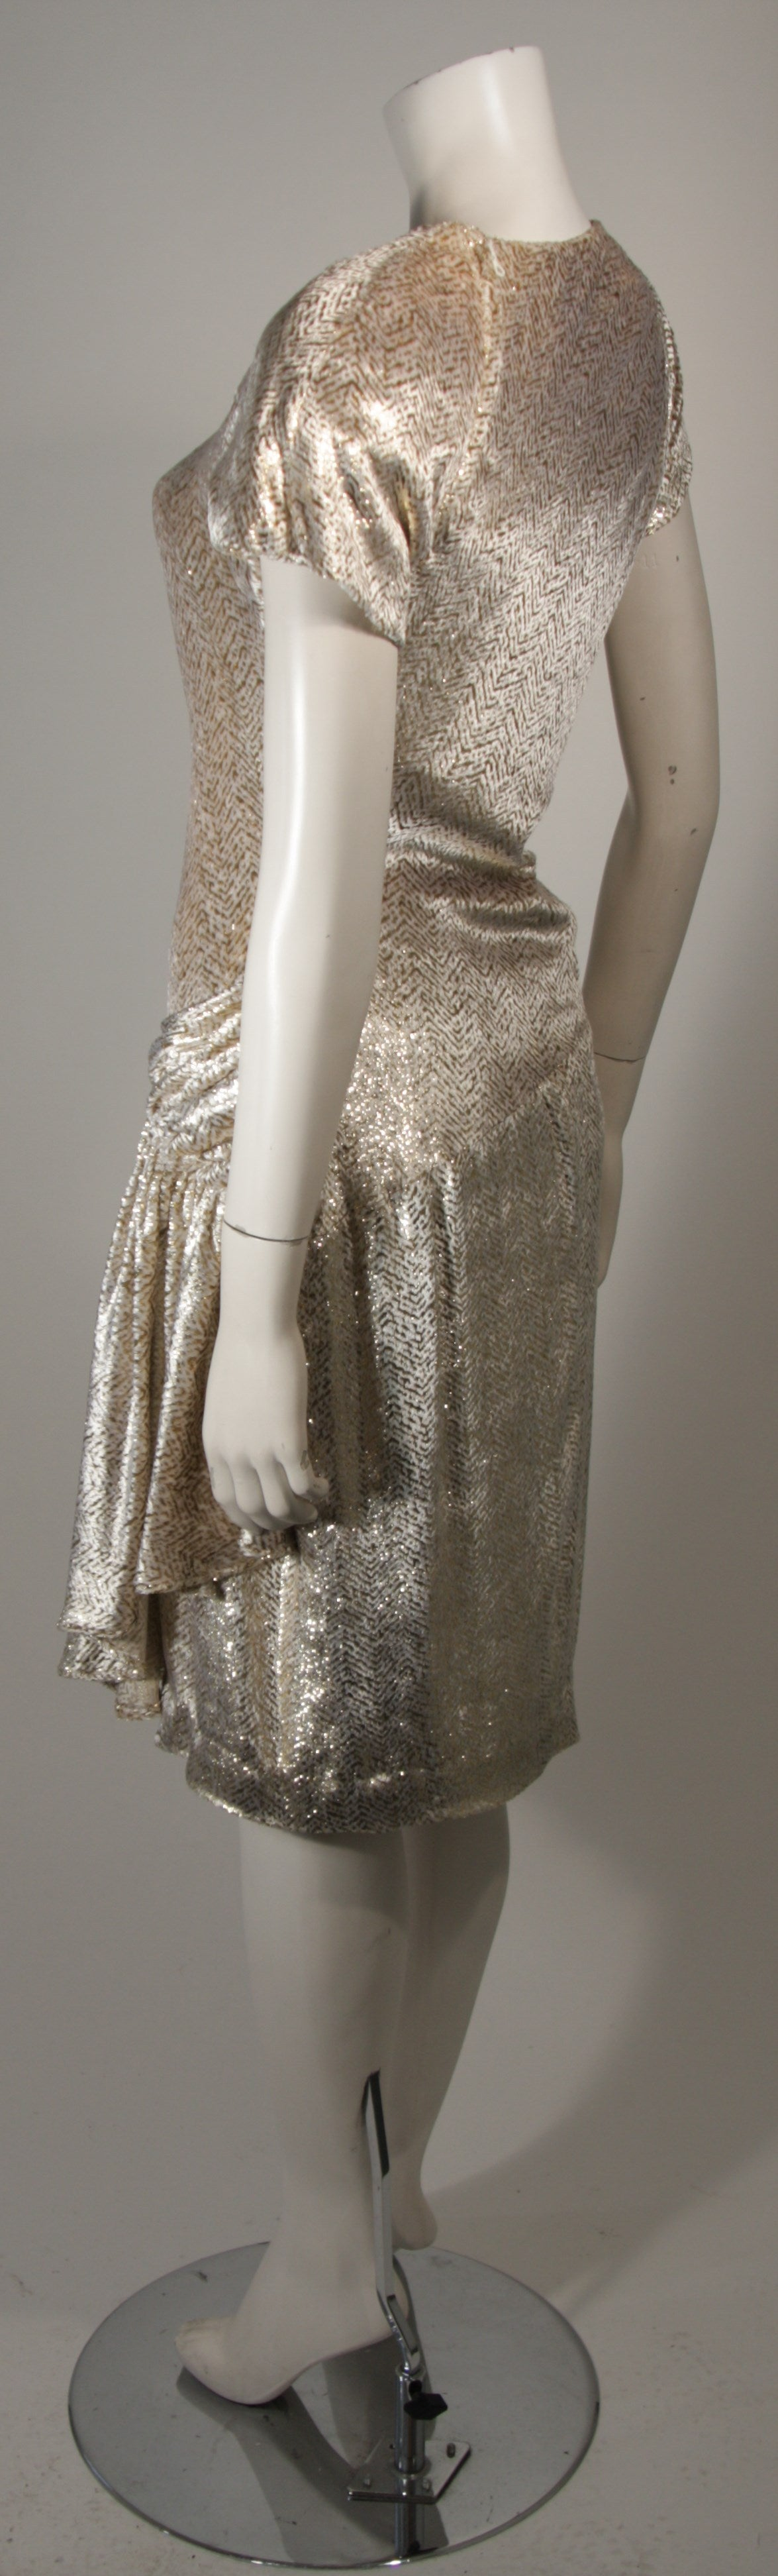 Vicky Tiel Ivory and Gold Velvet Texture Cocktail Dress Size 38 For Sale 1